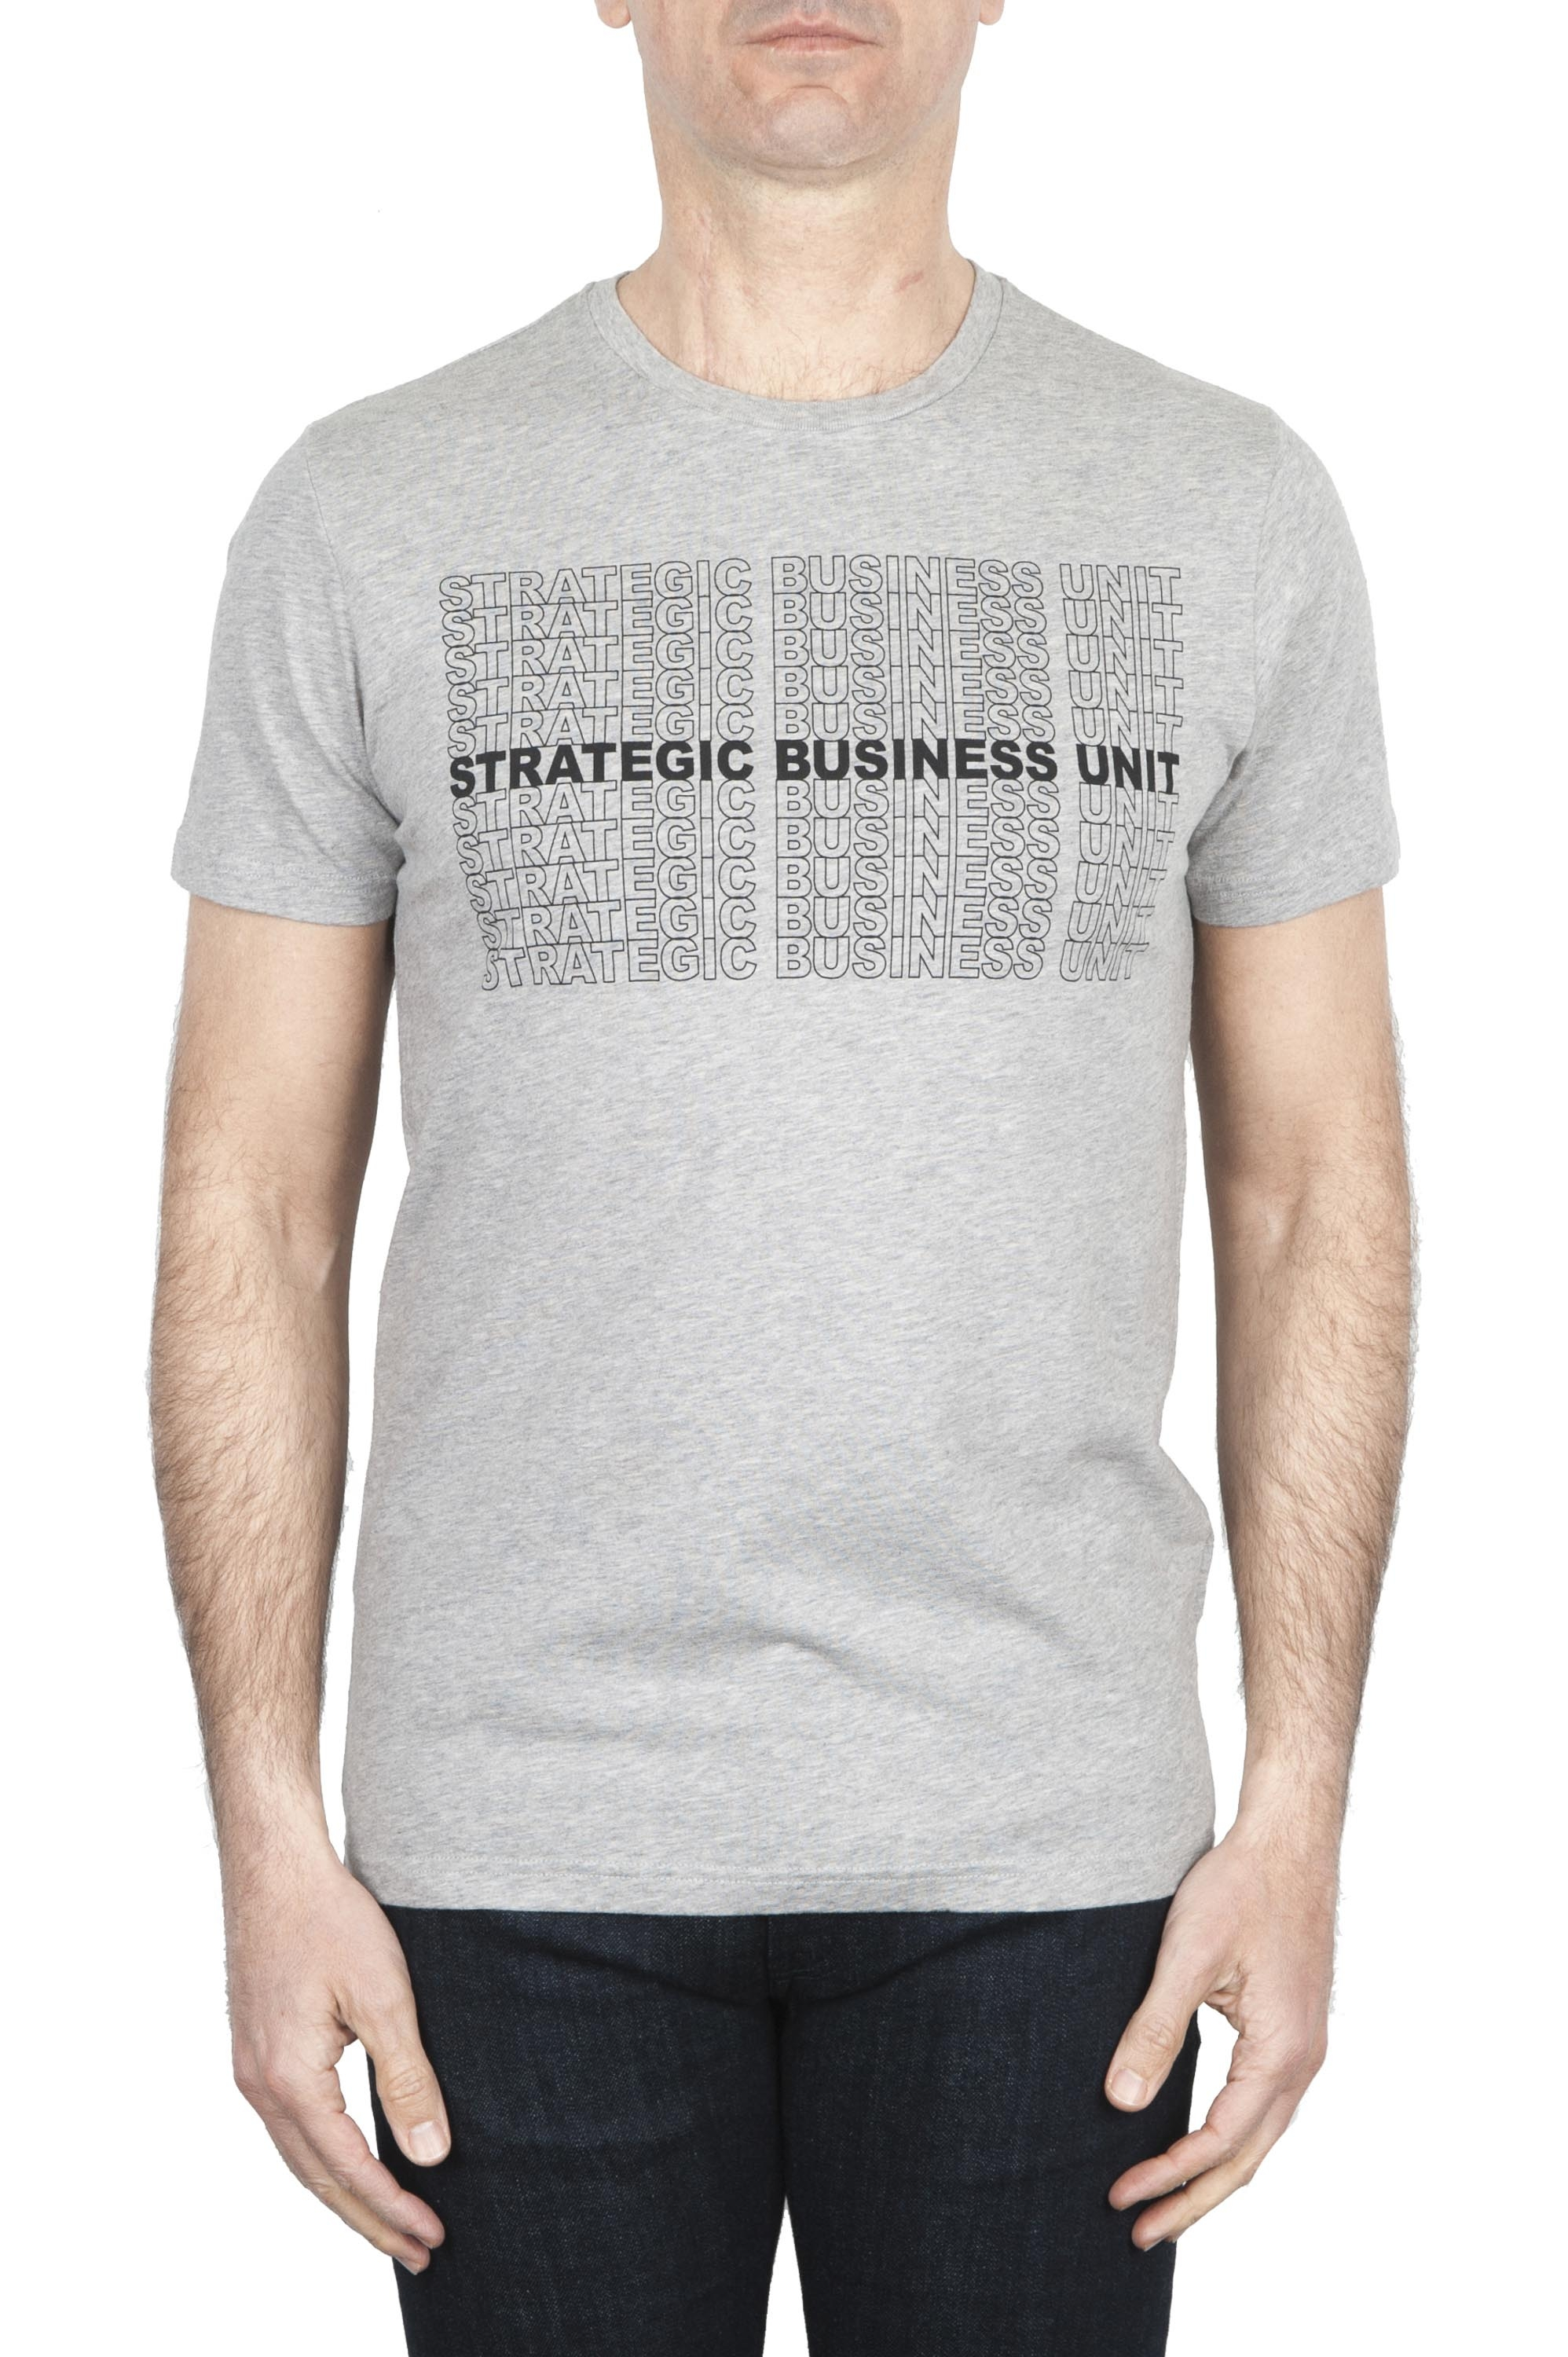 SBU 01801_19AW Round neck mélange grey t-shirt printed by hand 01